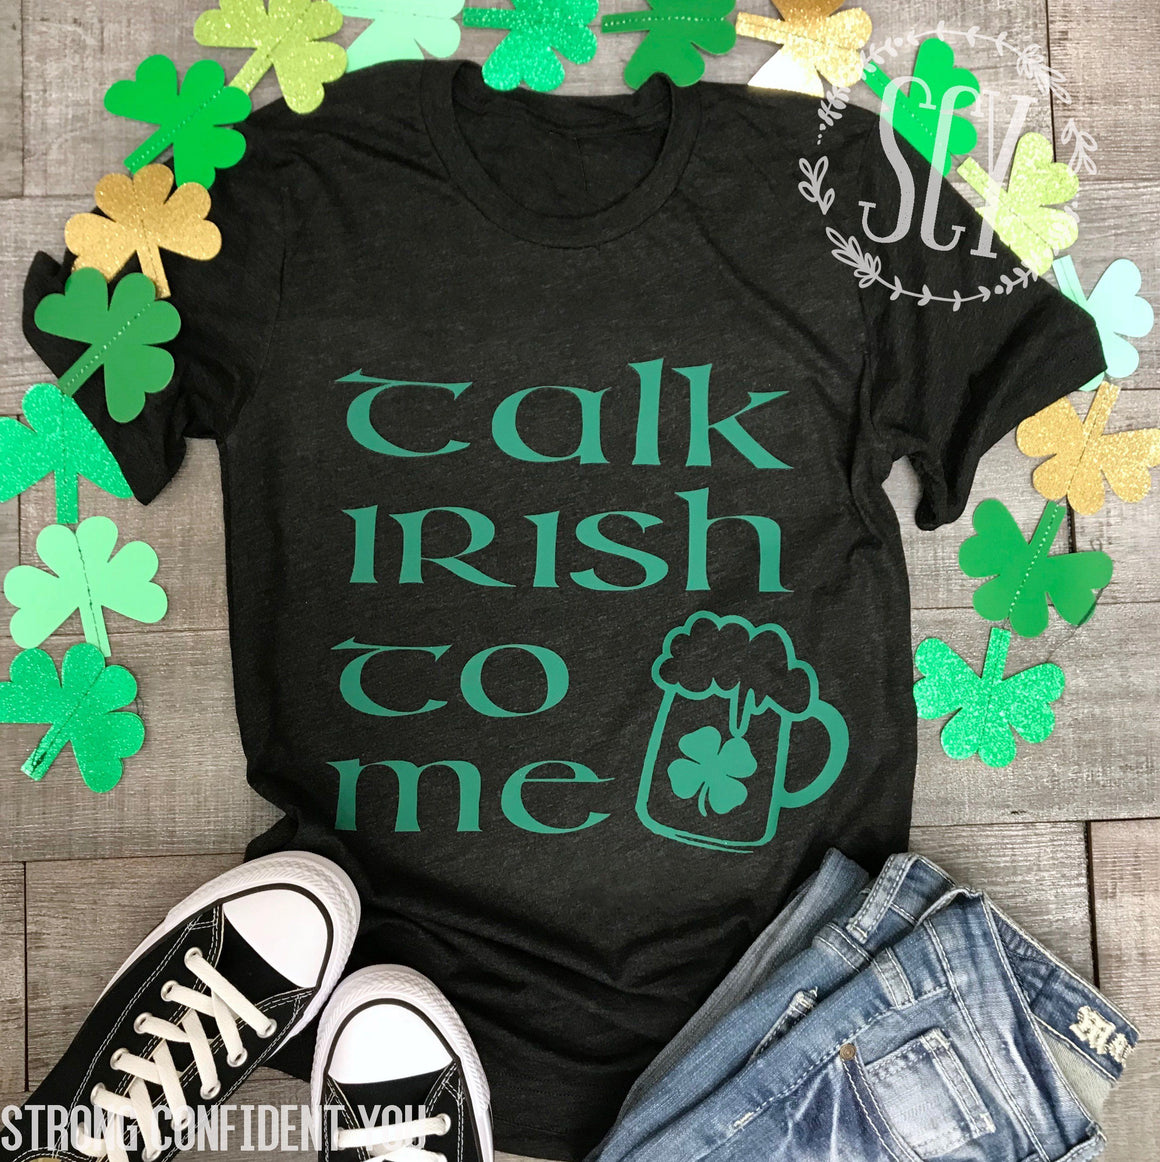 Talk Irish To Me - Strong Confident You